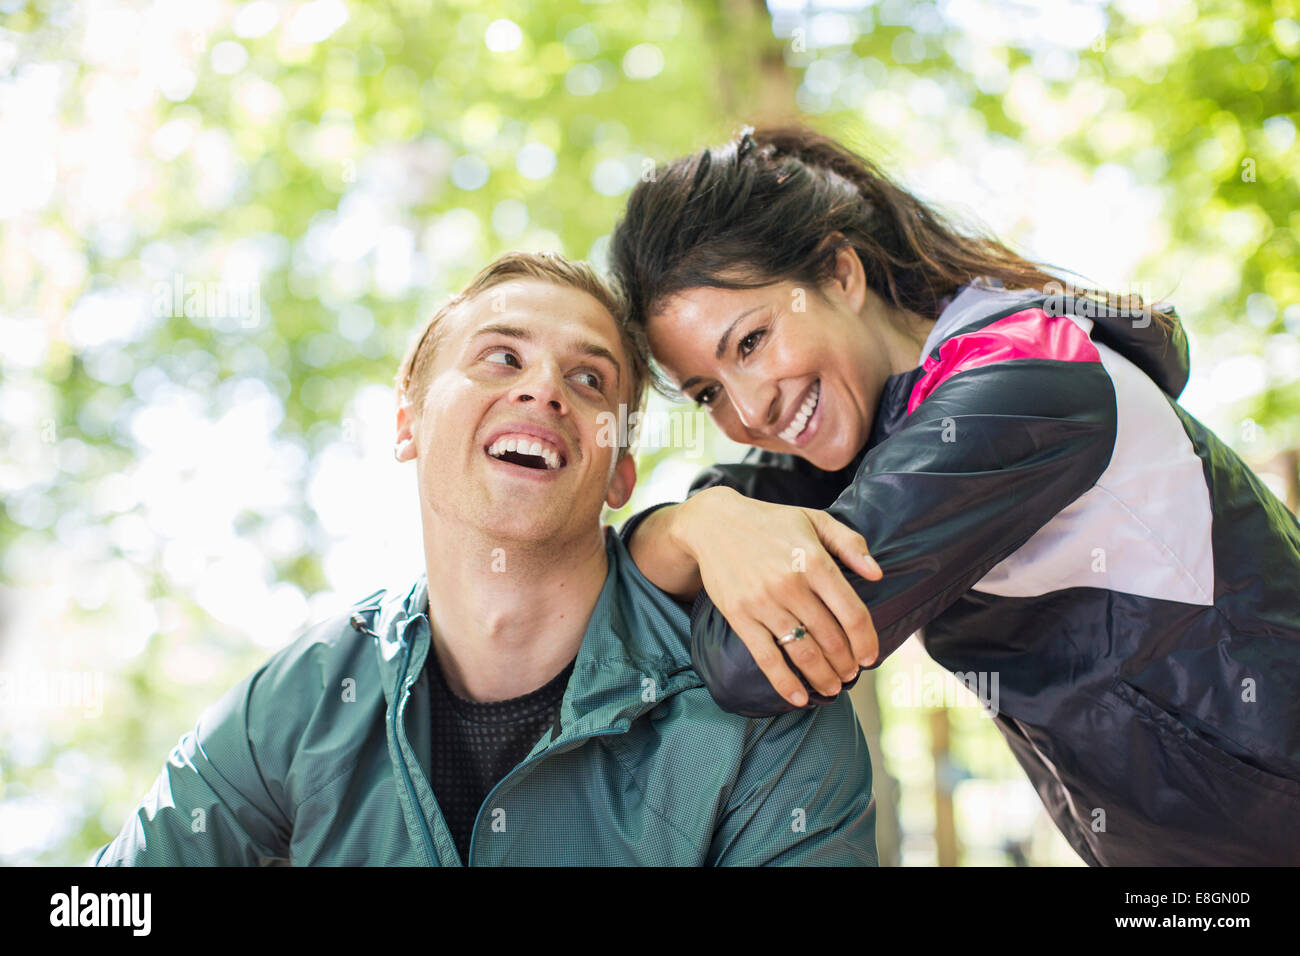 Happy multi-ethnic fit couple outdoors - Stock Image